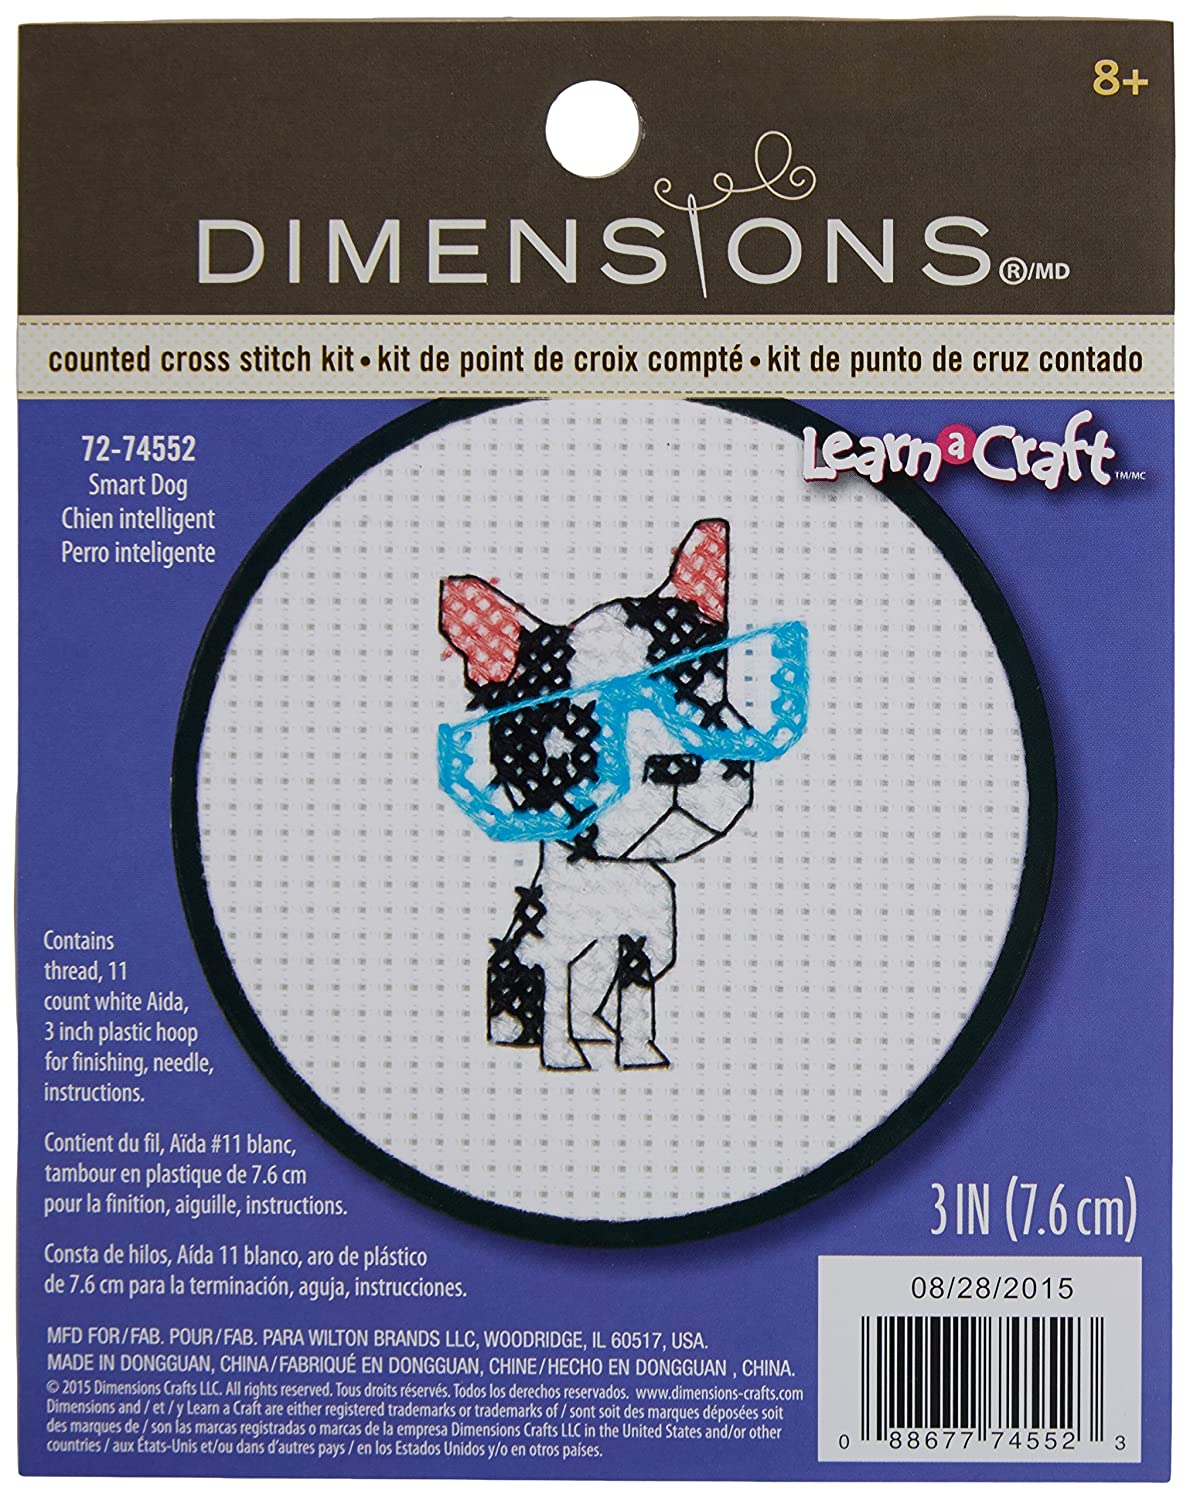 Dimensions Needlecrafts 72-74552 Smart Dog Counted Cross Stitch Kit